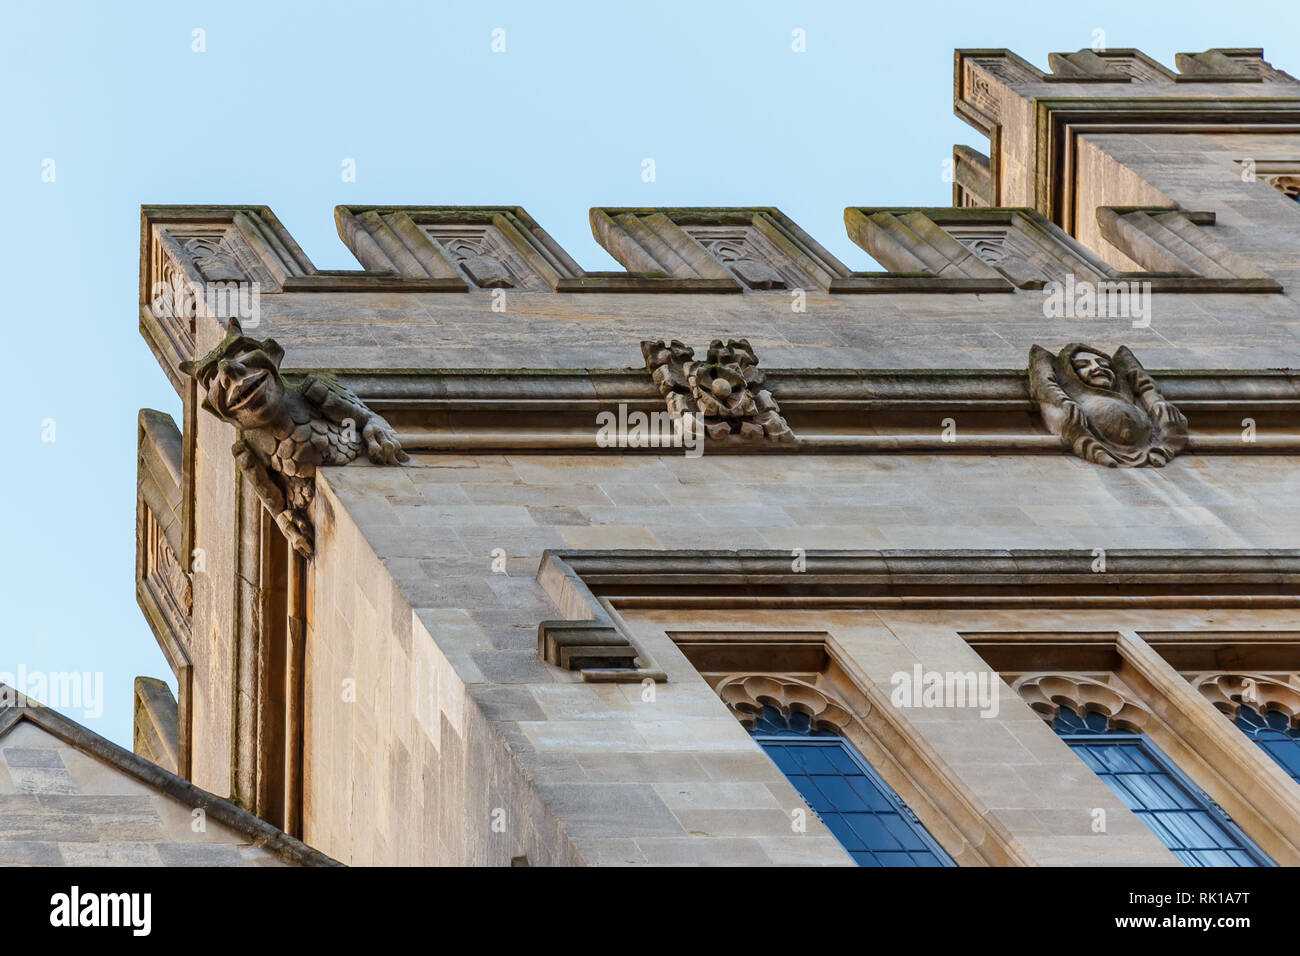 Oxford in spring, England - Stock Image